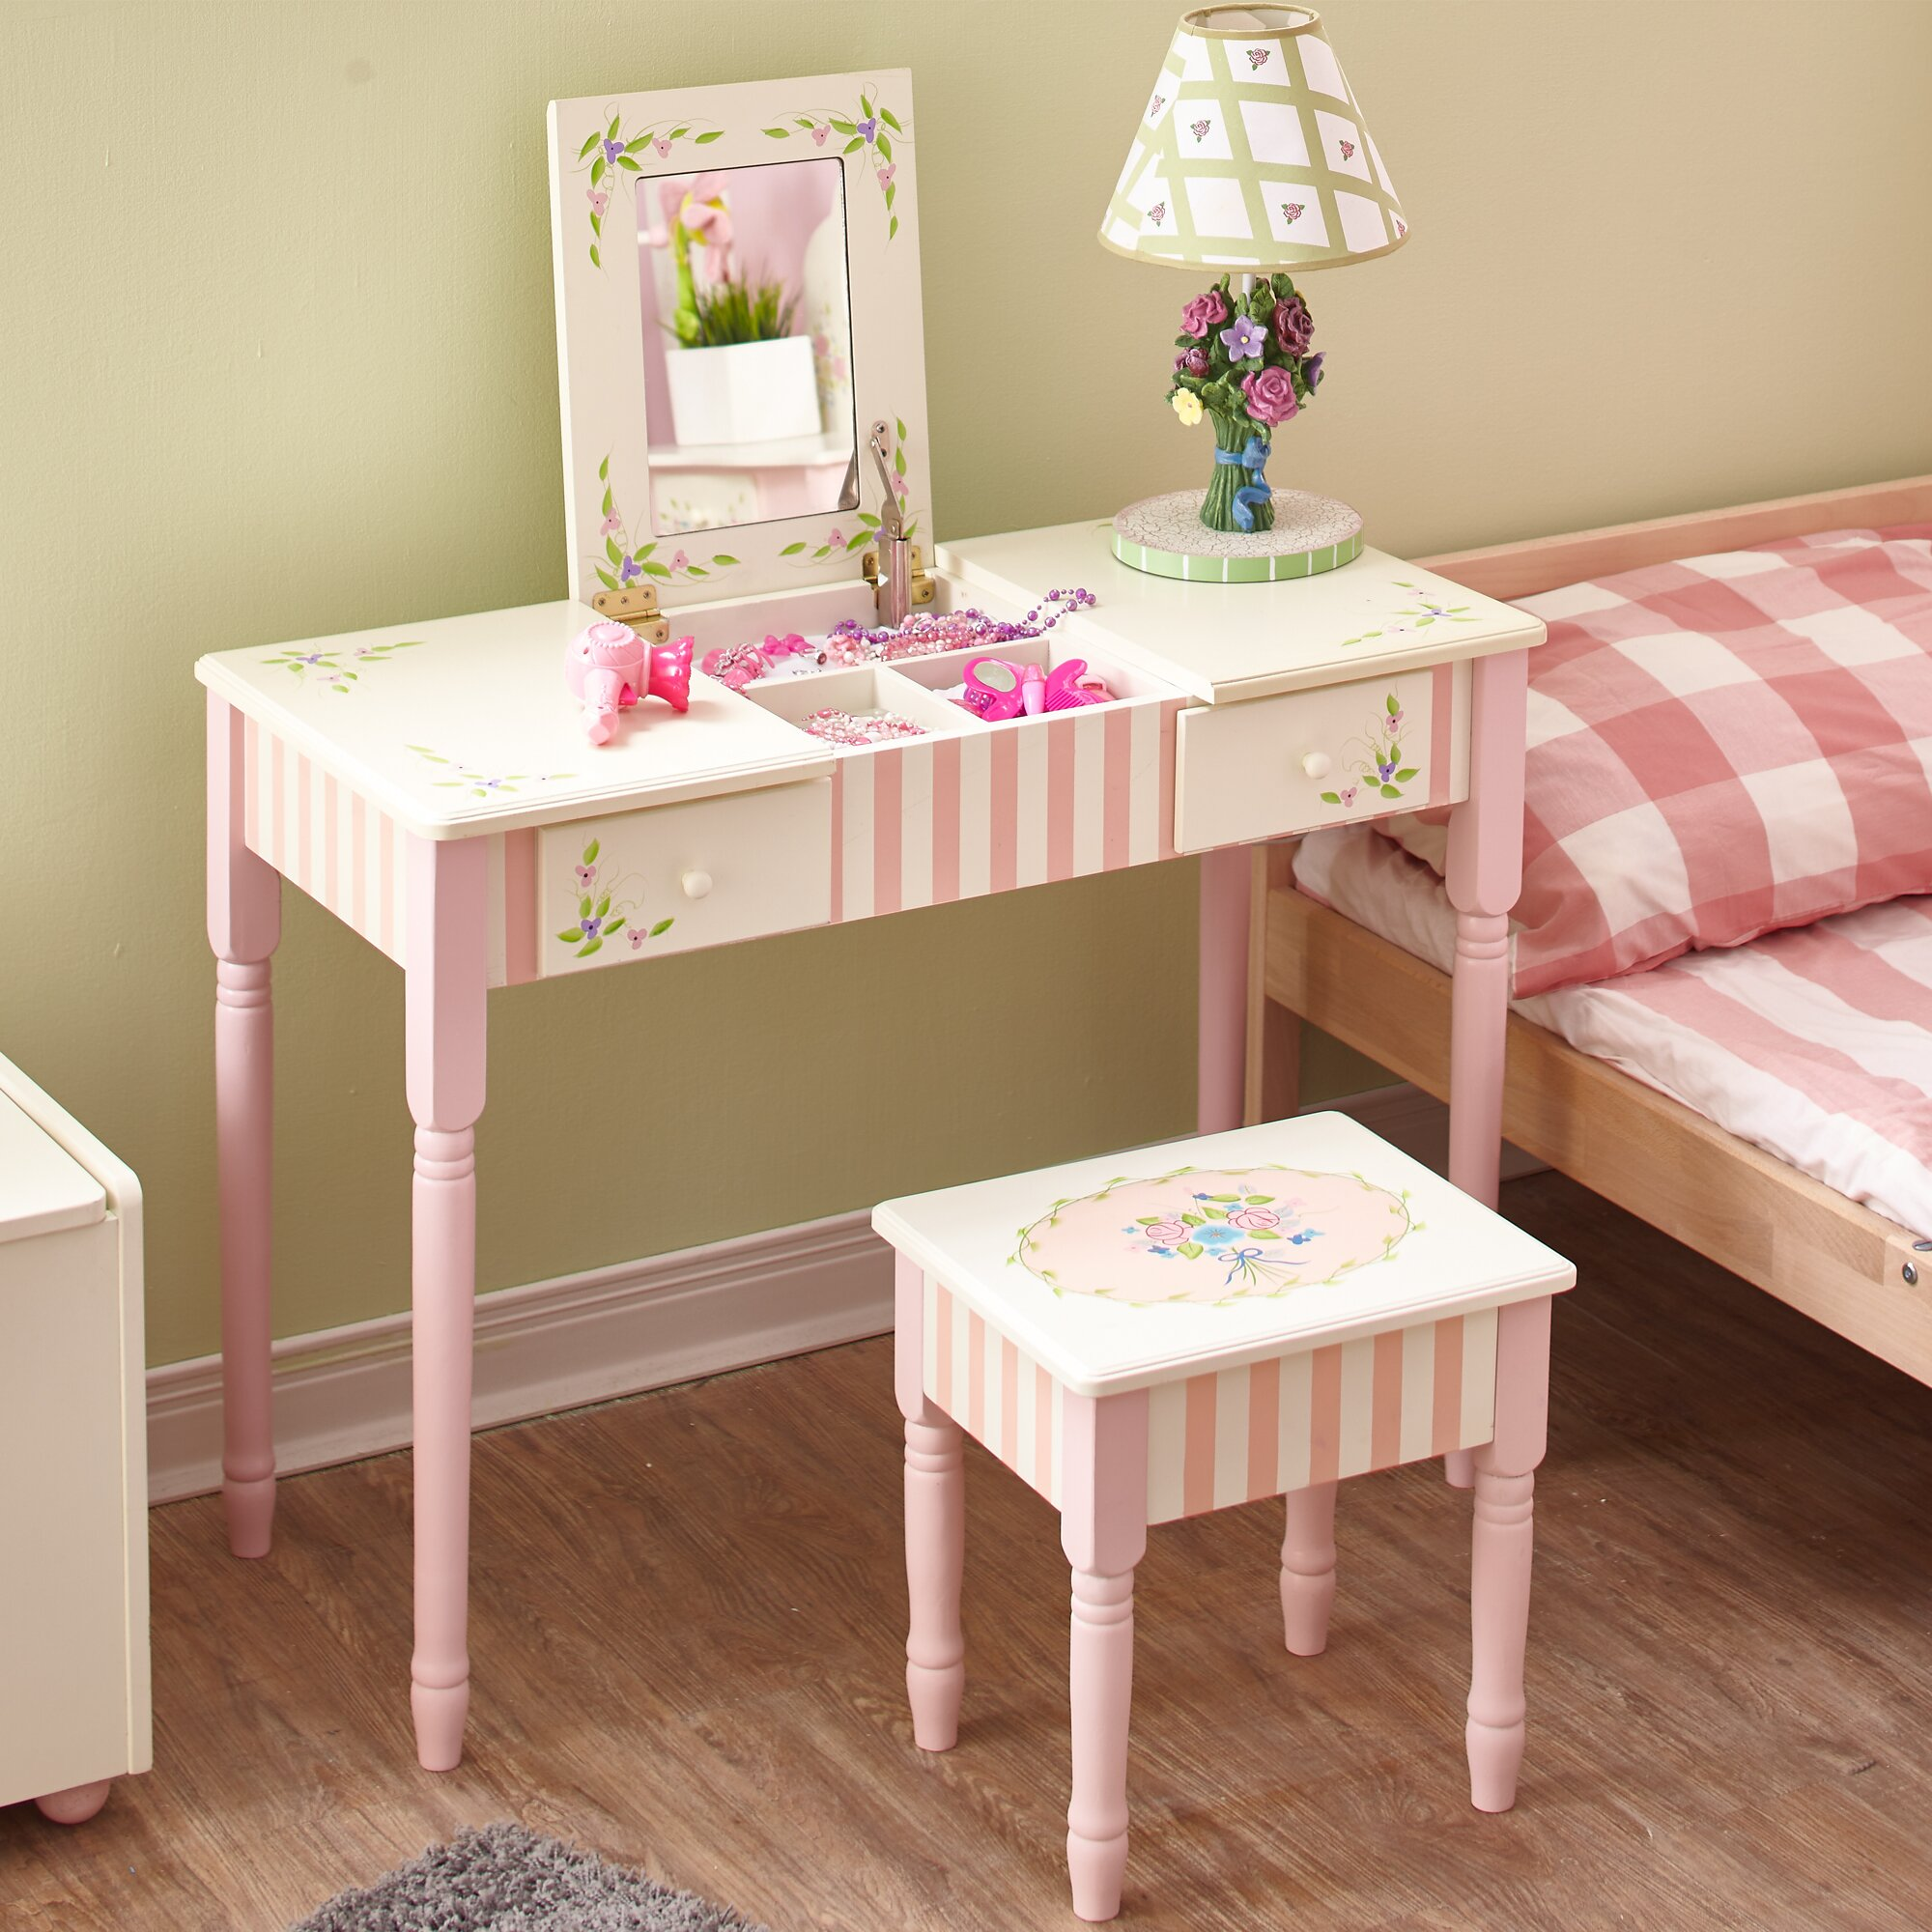 Fantasy fields bouquet vanity table stool set reviews for Vanity table set